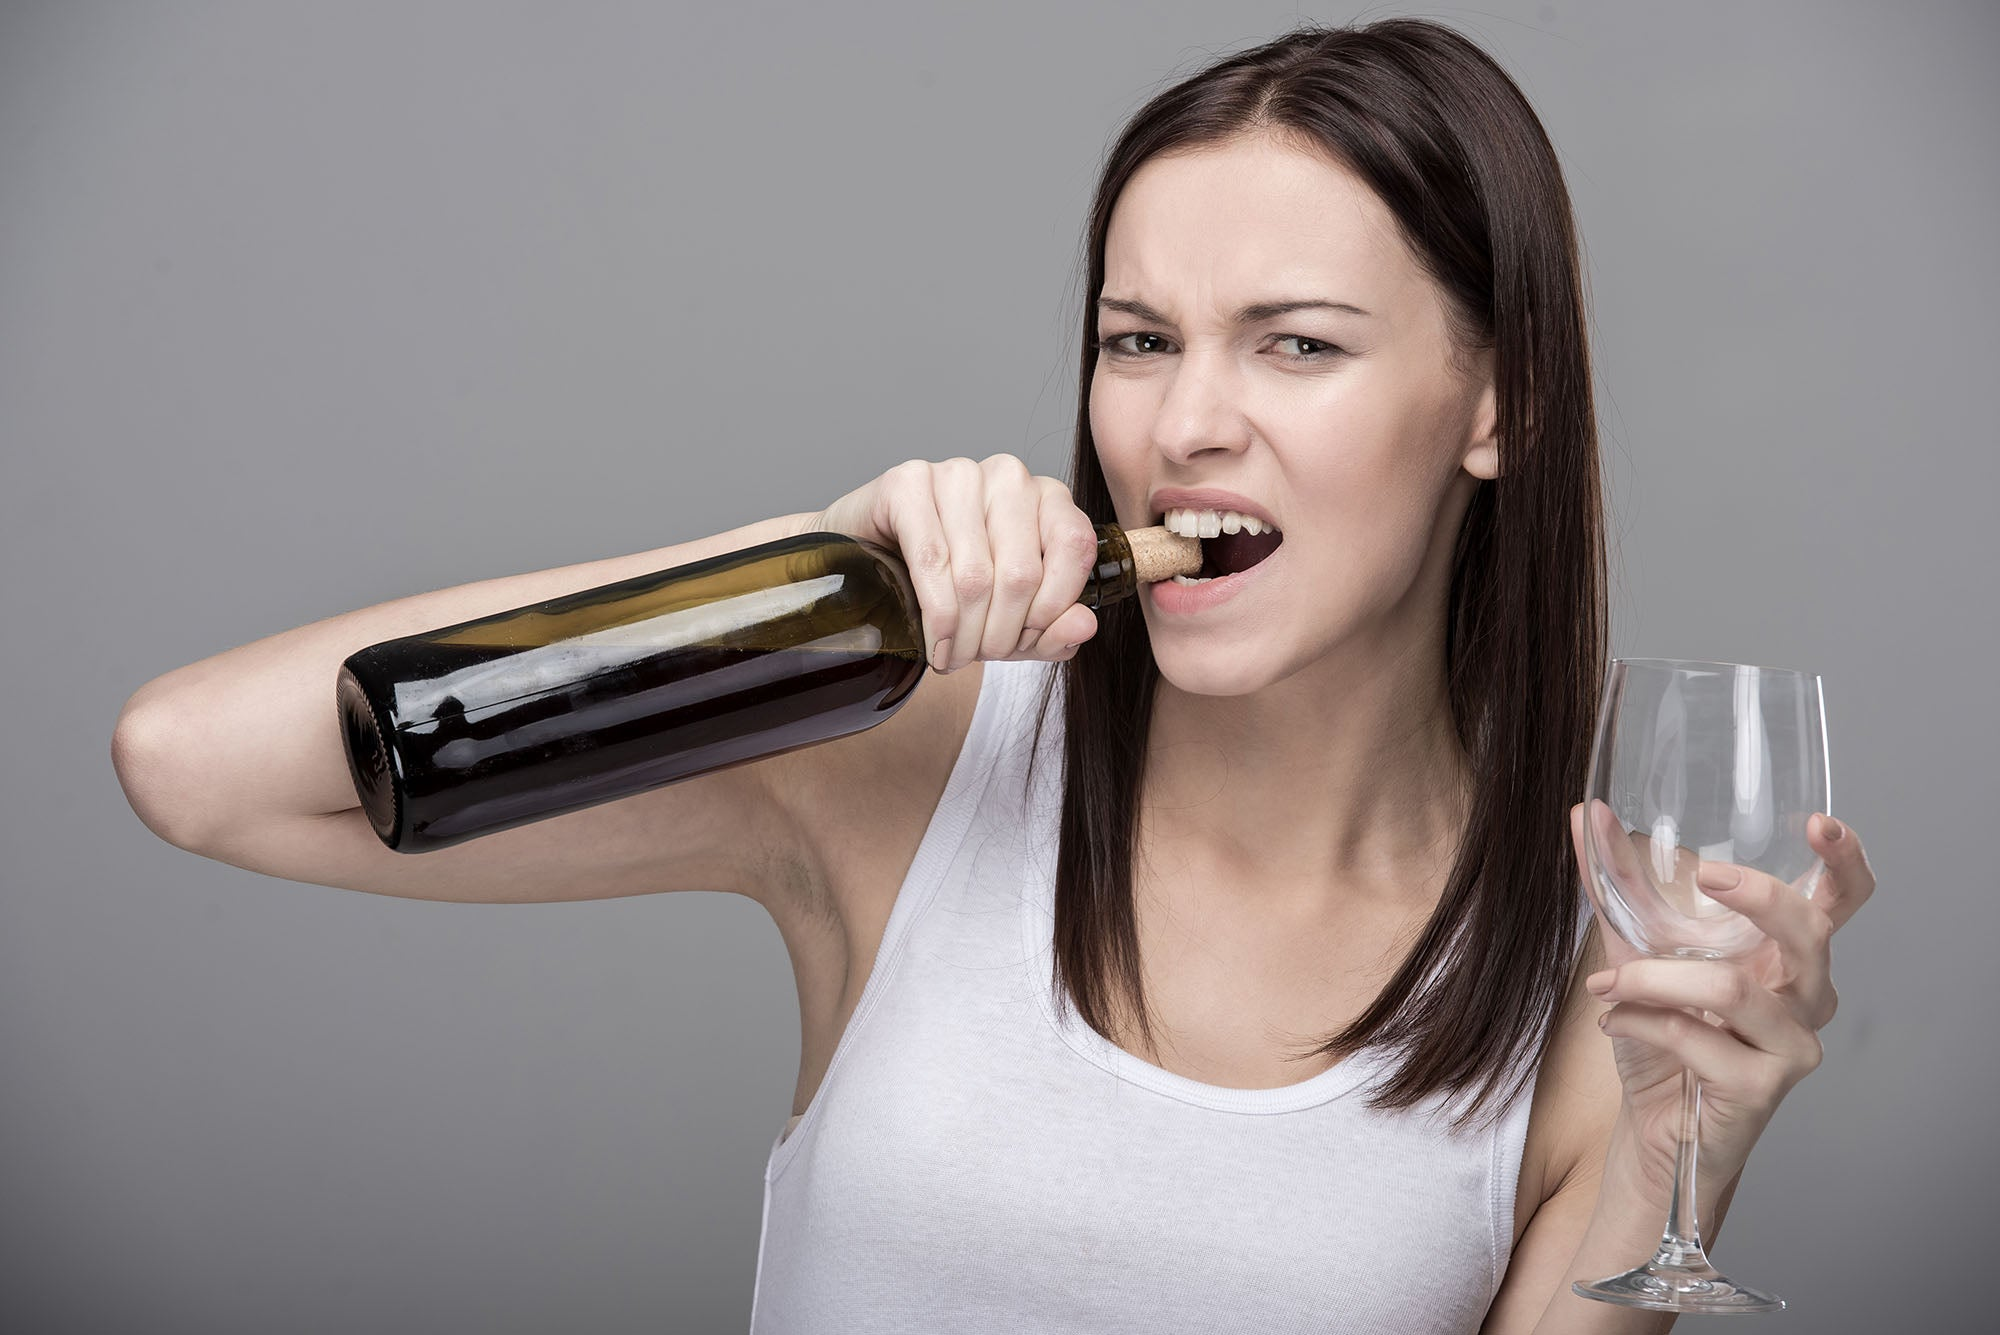 Best Creative Ways to Open Wine Without a Corkscrew - The Dehydration Company | Brumate